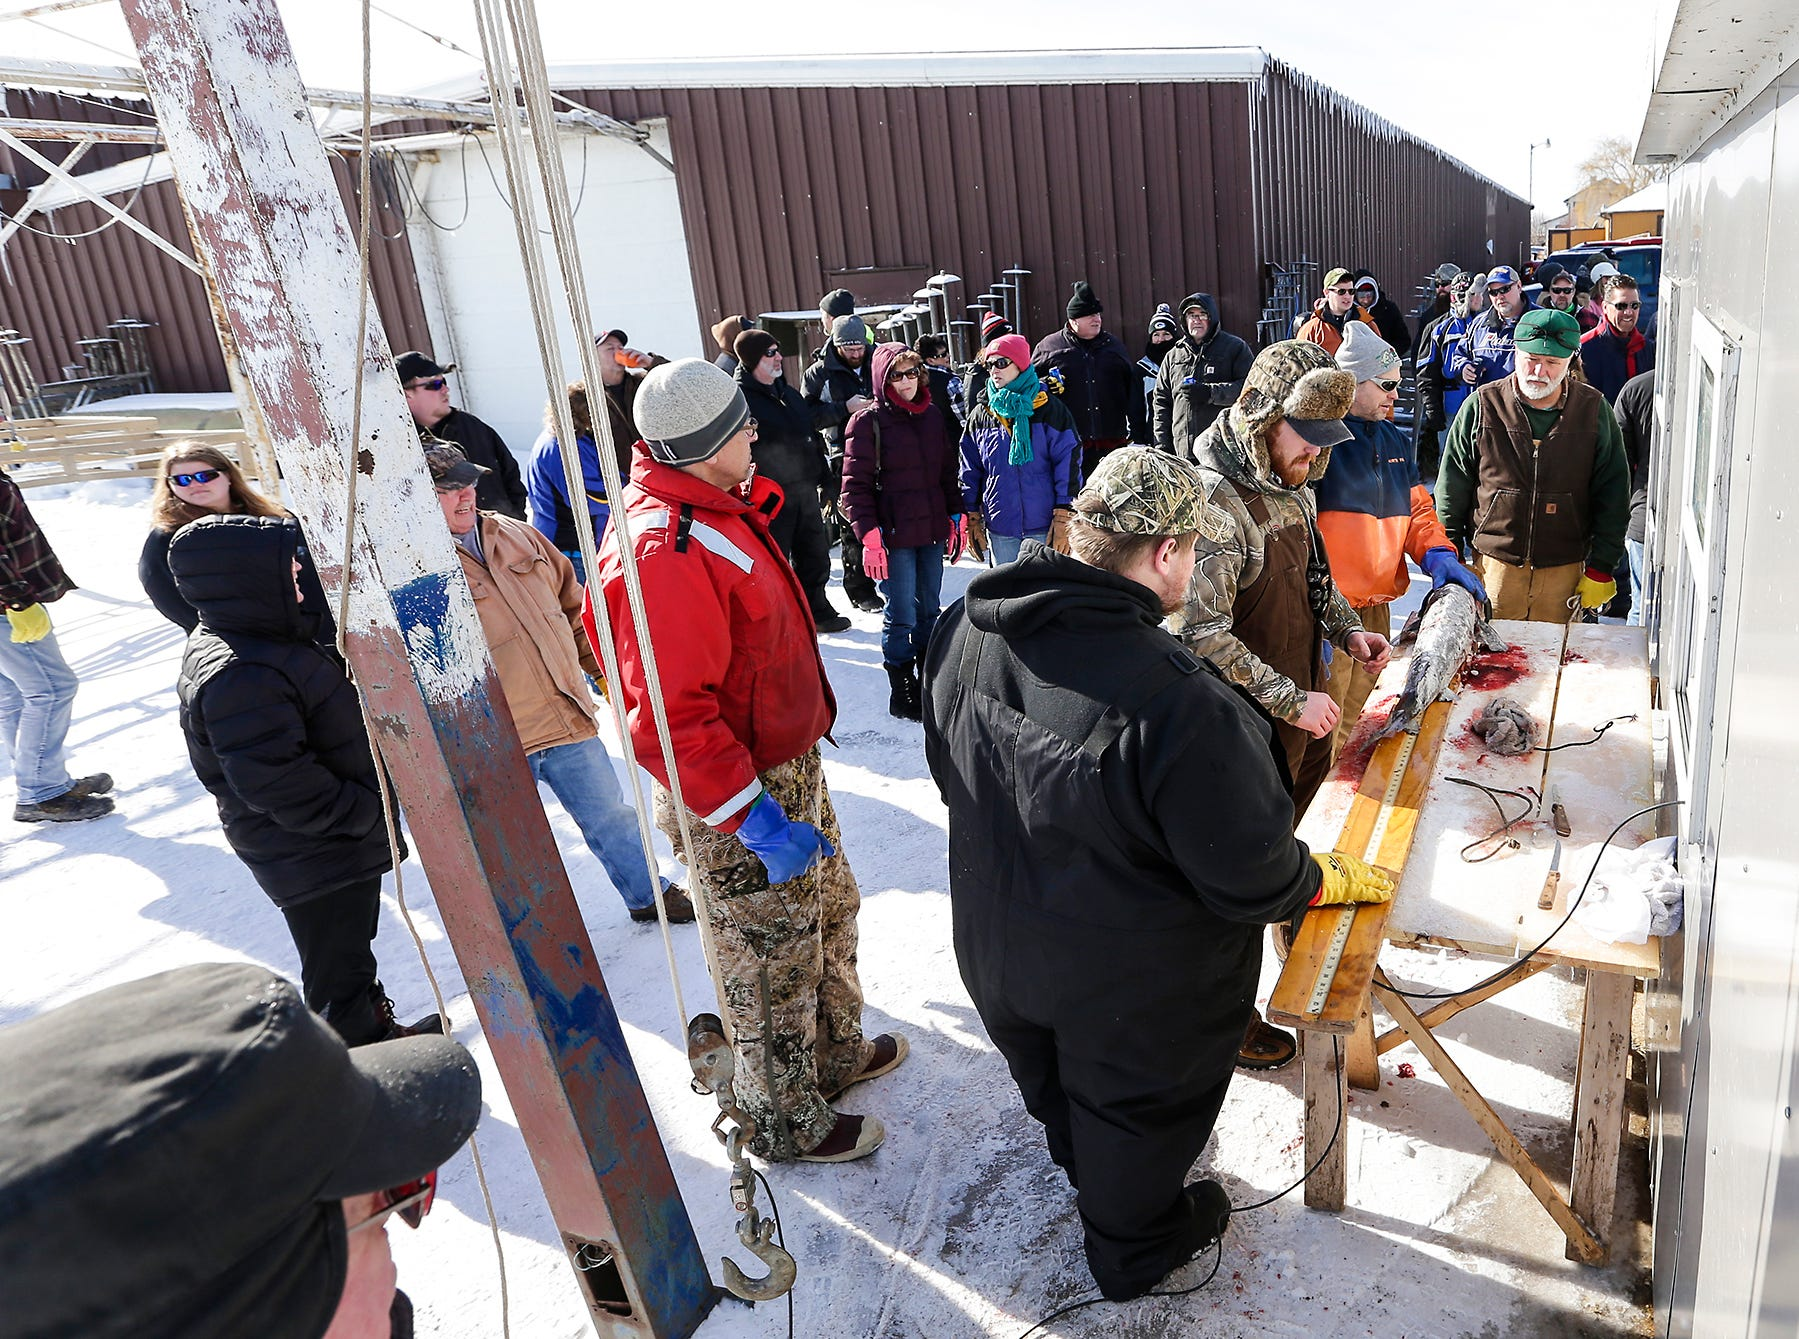 A small crowd gathers Saturday, February 9, 2019 at Wendt's on the Lake between Fond du Lac and Oshkosh as DNR officials look over a sturgeon that was speared on opening day of sturgeon spearing season. Sturgeon spearing season runs from February 9, 2019 through February 24, 2019 on Lake Winnebago or until any